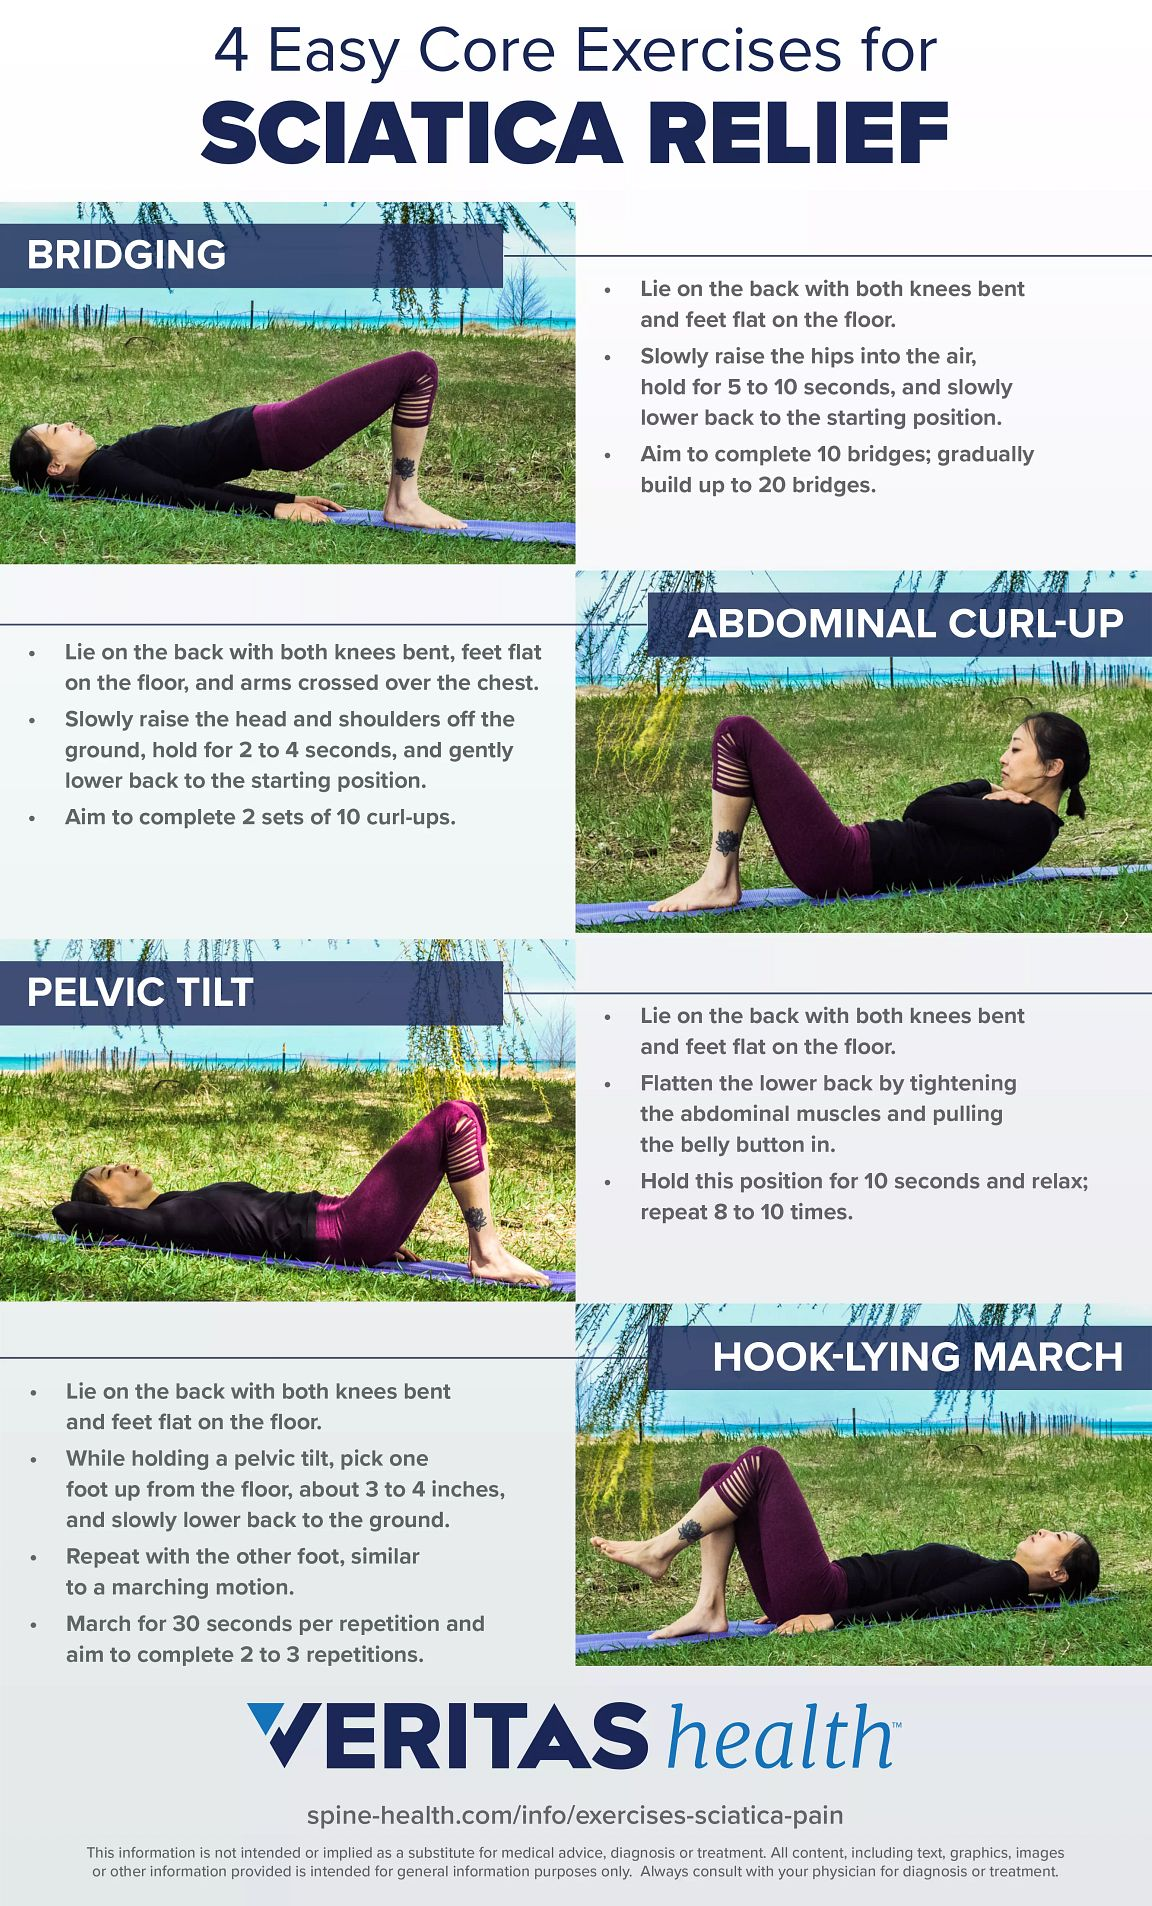 4 Easy Core Exercises for Sciatica Relief